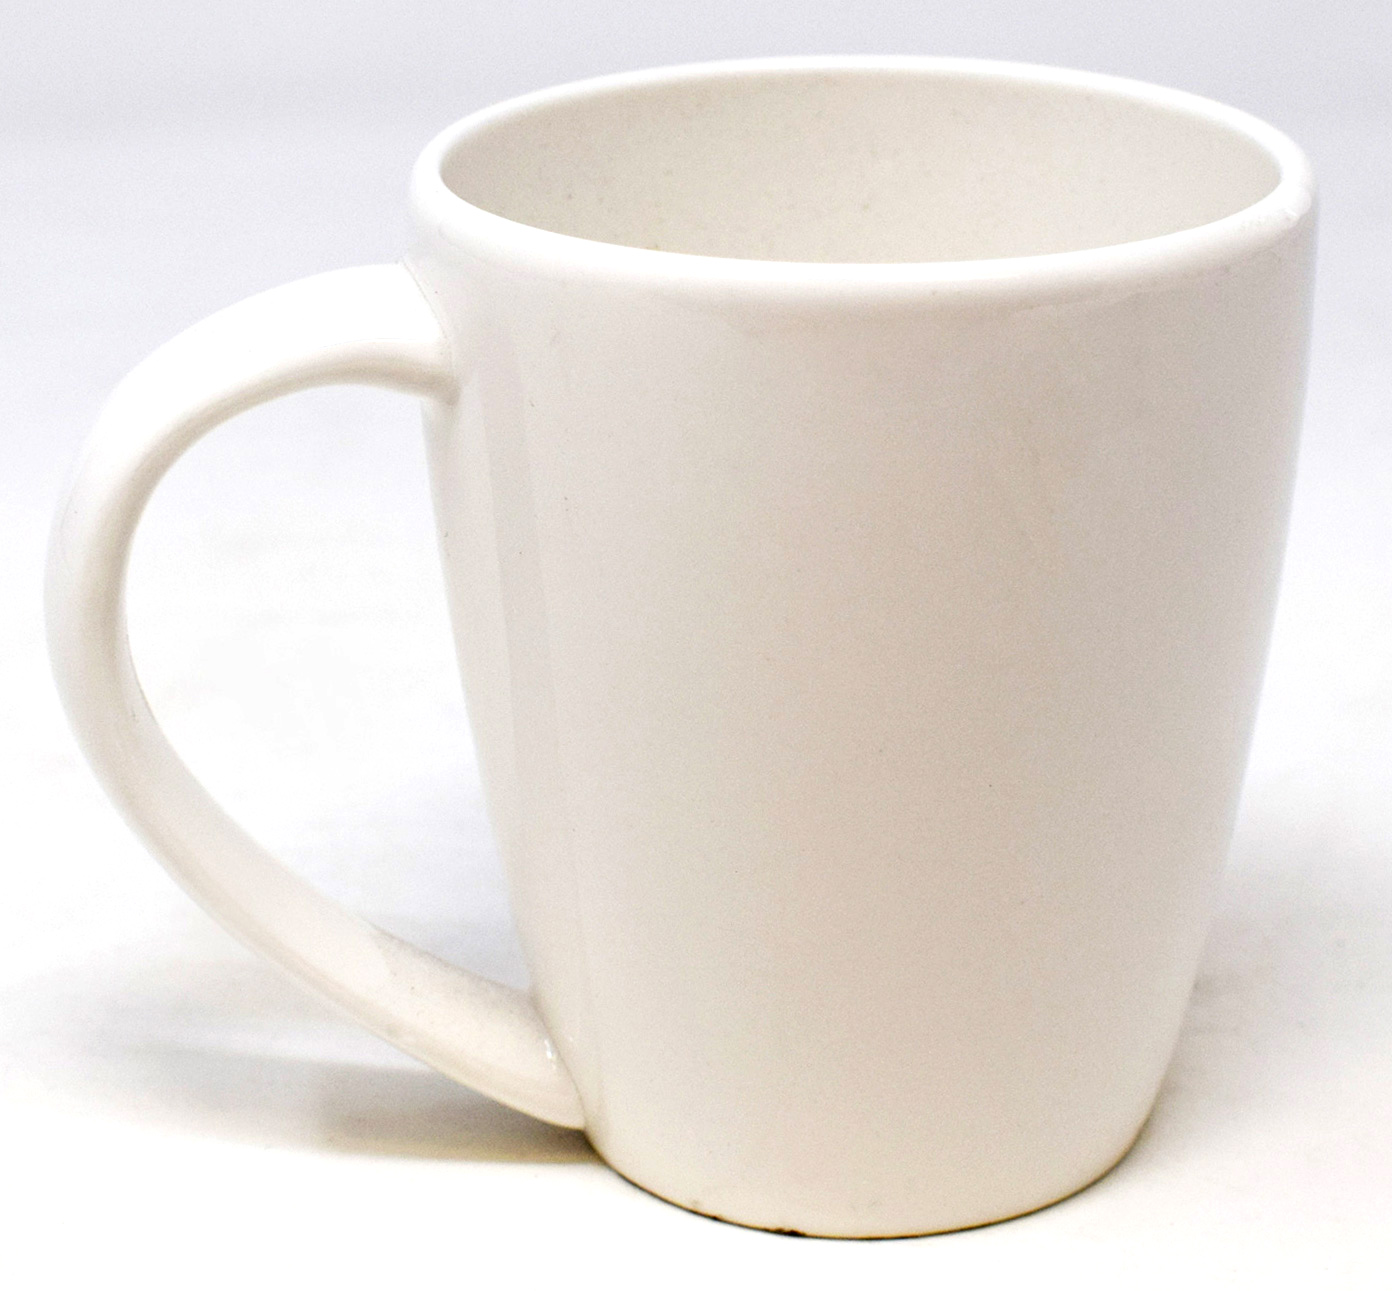 NEW Dudson White 7oz Cups Catering Cafe Fine China Kitchen Home Tea ...